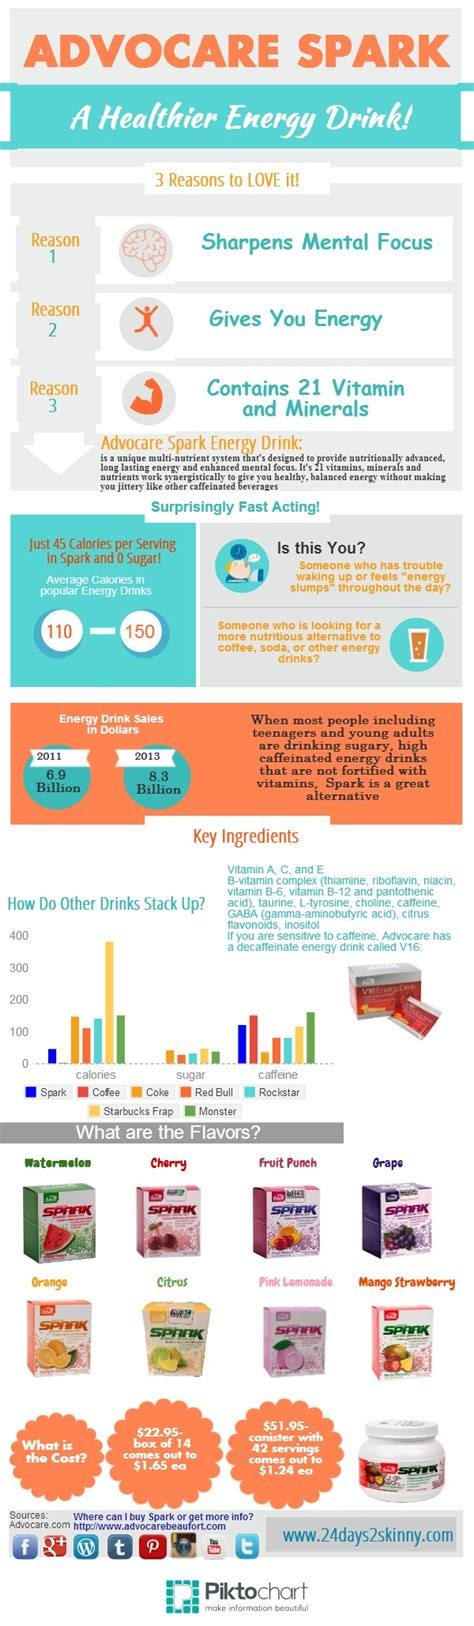 cloud 9 energy drink ingredients advocare spark piktochart visual editor